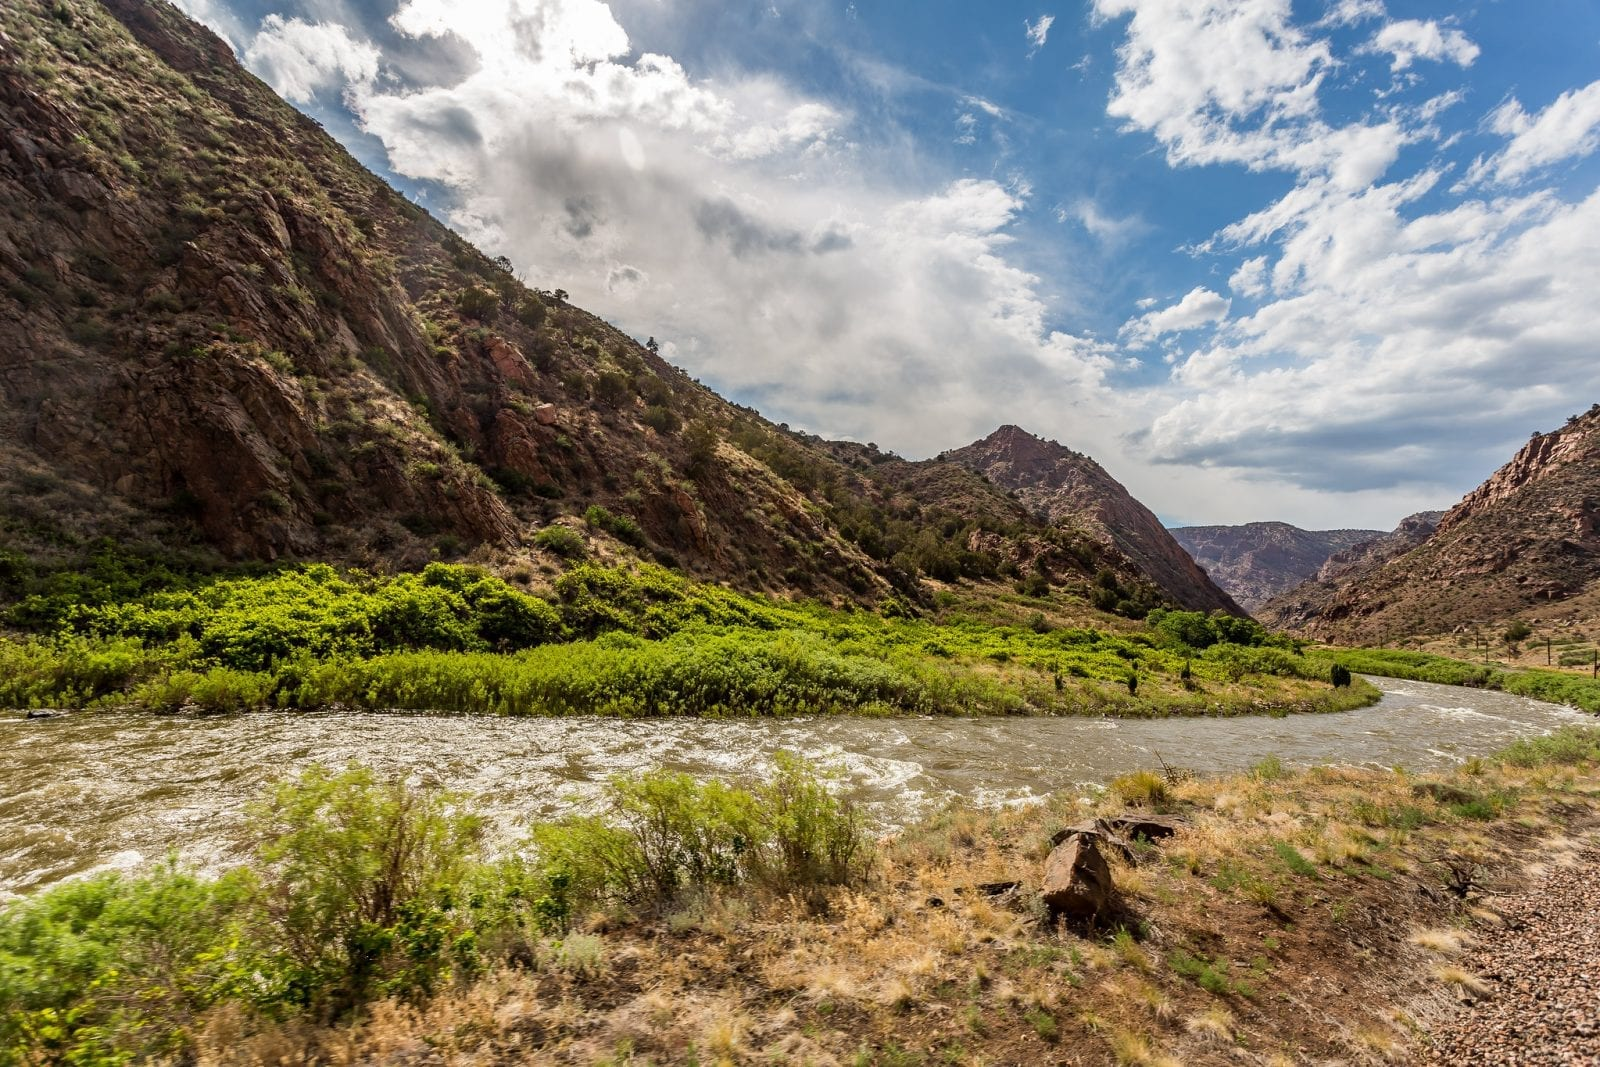 Image of the Arkansas River flowing through the Royal Gorge in Colorado